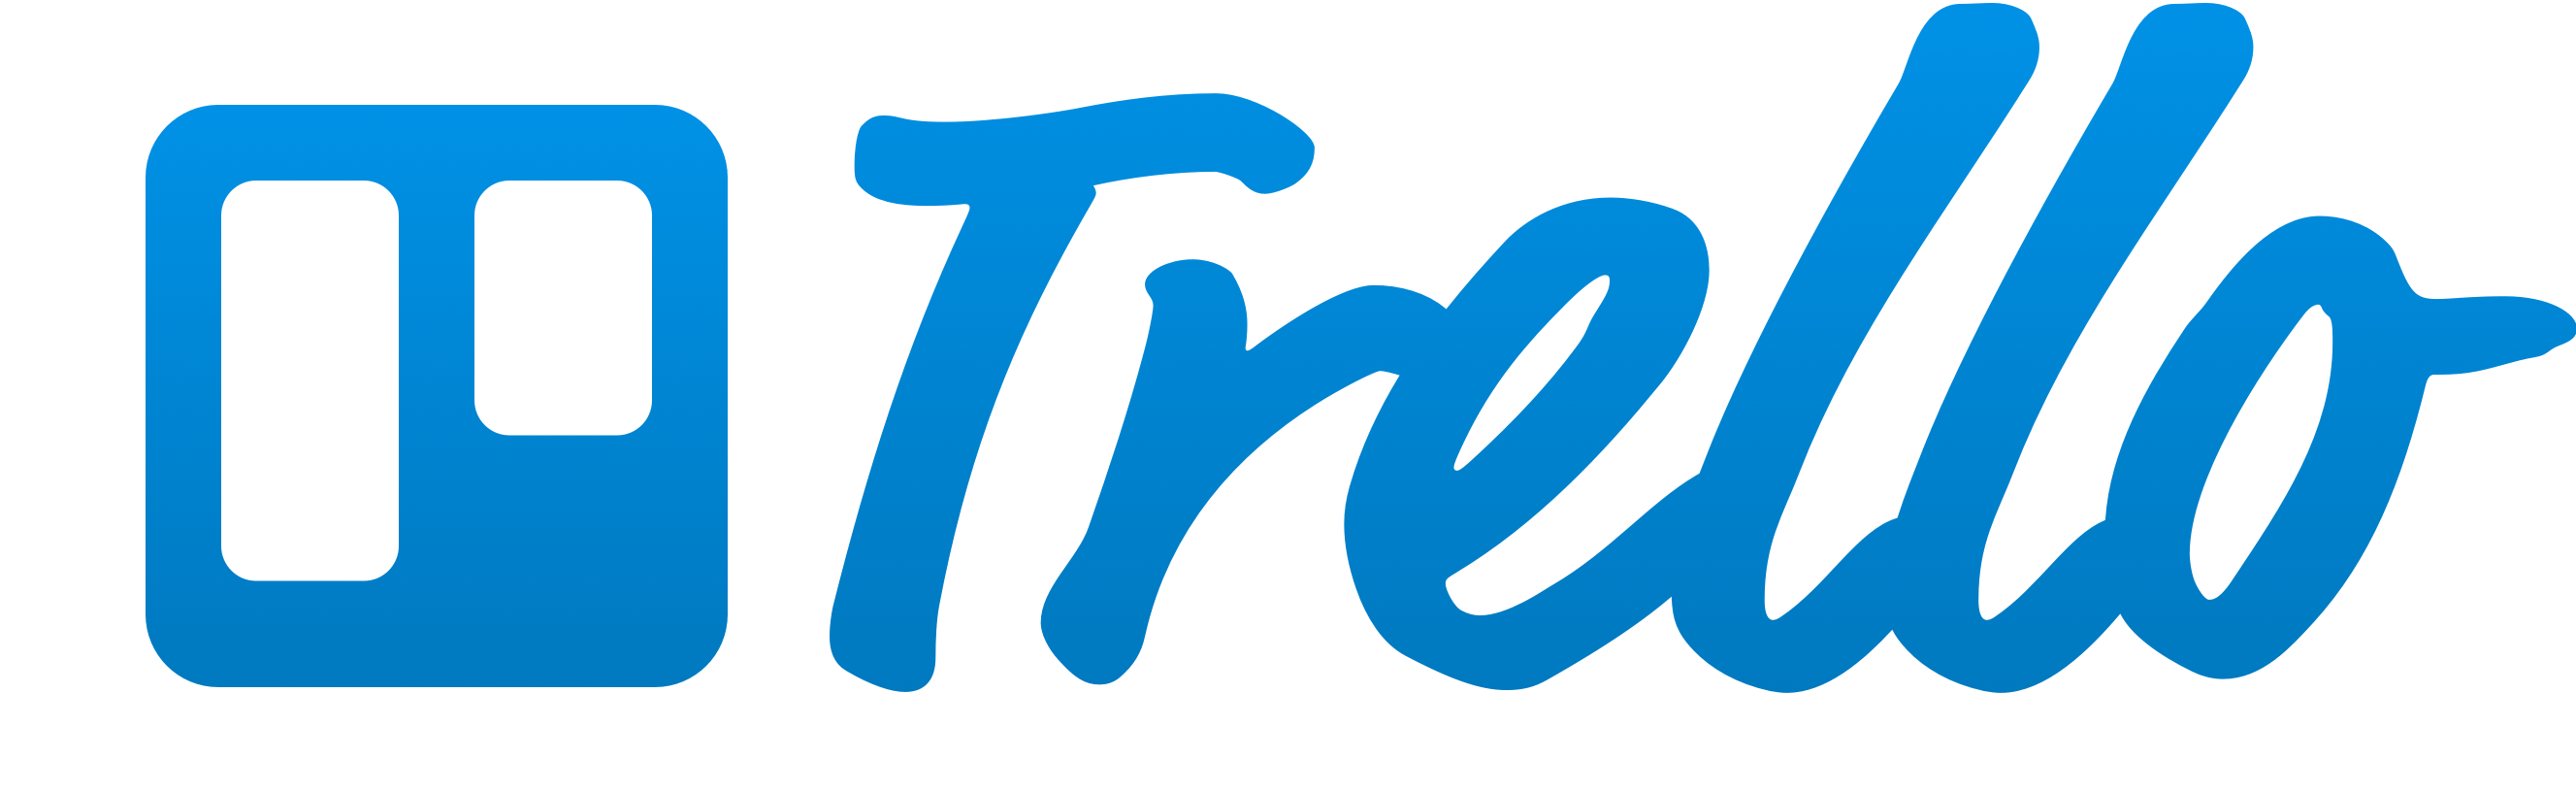 Image result for trello app logo